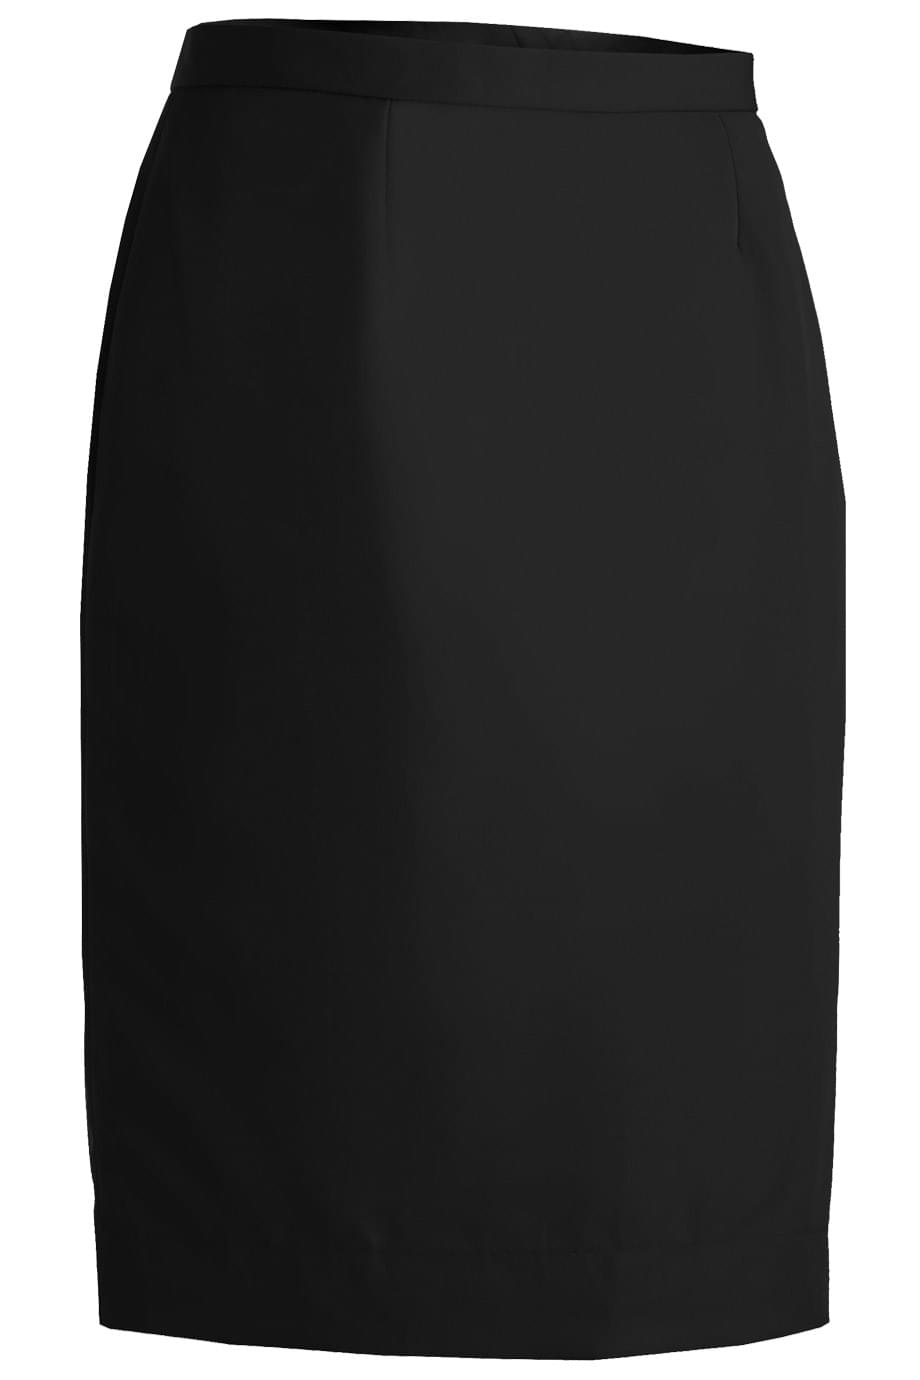 LADIES' POLYESTER STRAIGHT SKIRT